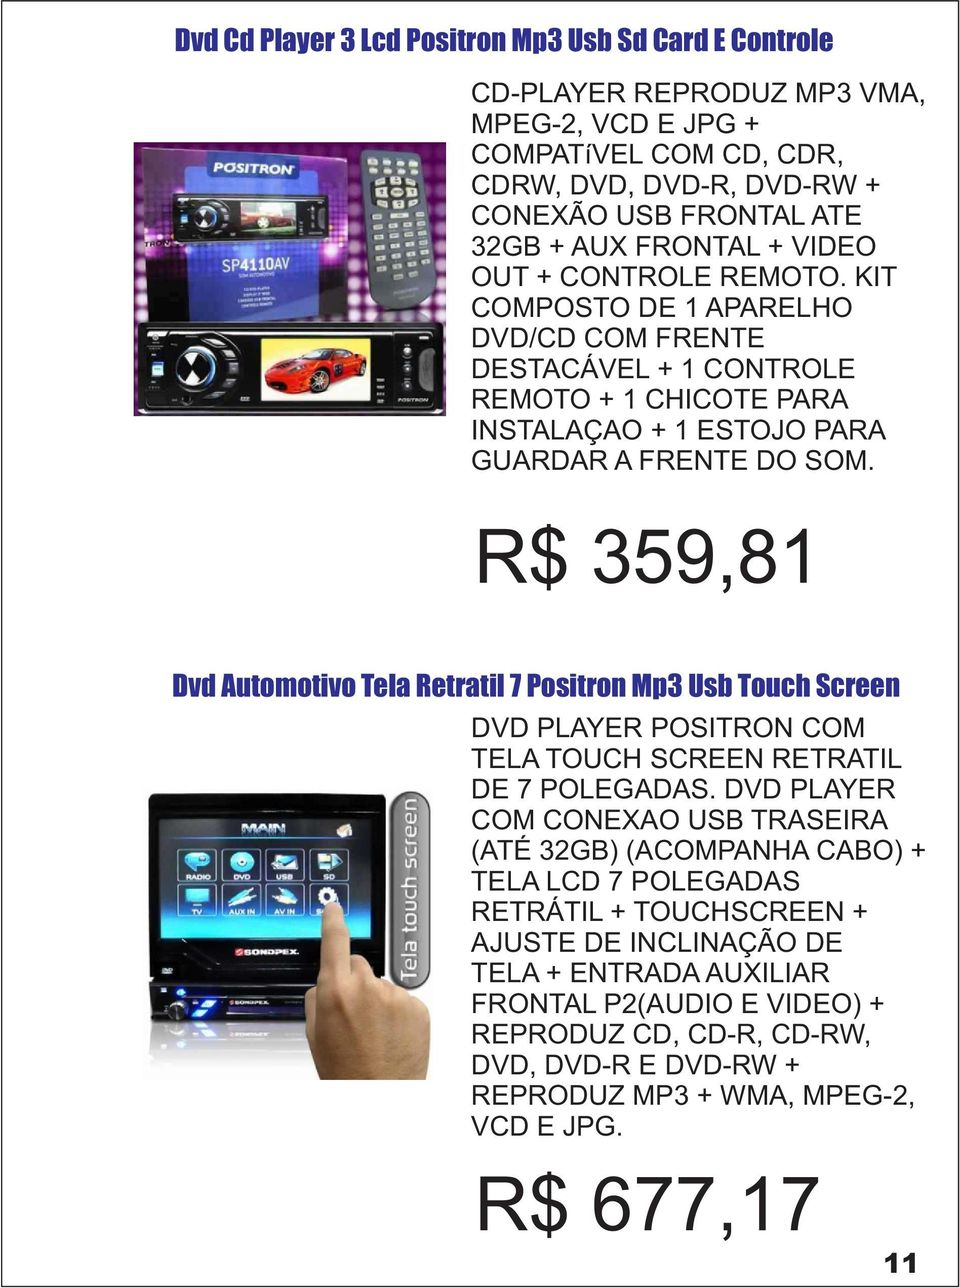 R$ 359,81 Dvd Automotivo Tela Retratil 7 Positron Mp3 Usb Touch Screen DVD PLAYER POSITRON COM TELA TOUCH SCREEN RETRATIL DE 7 POLEGADAS.